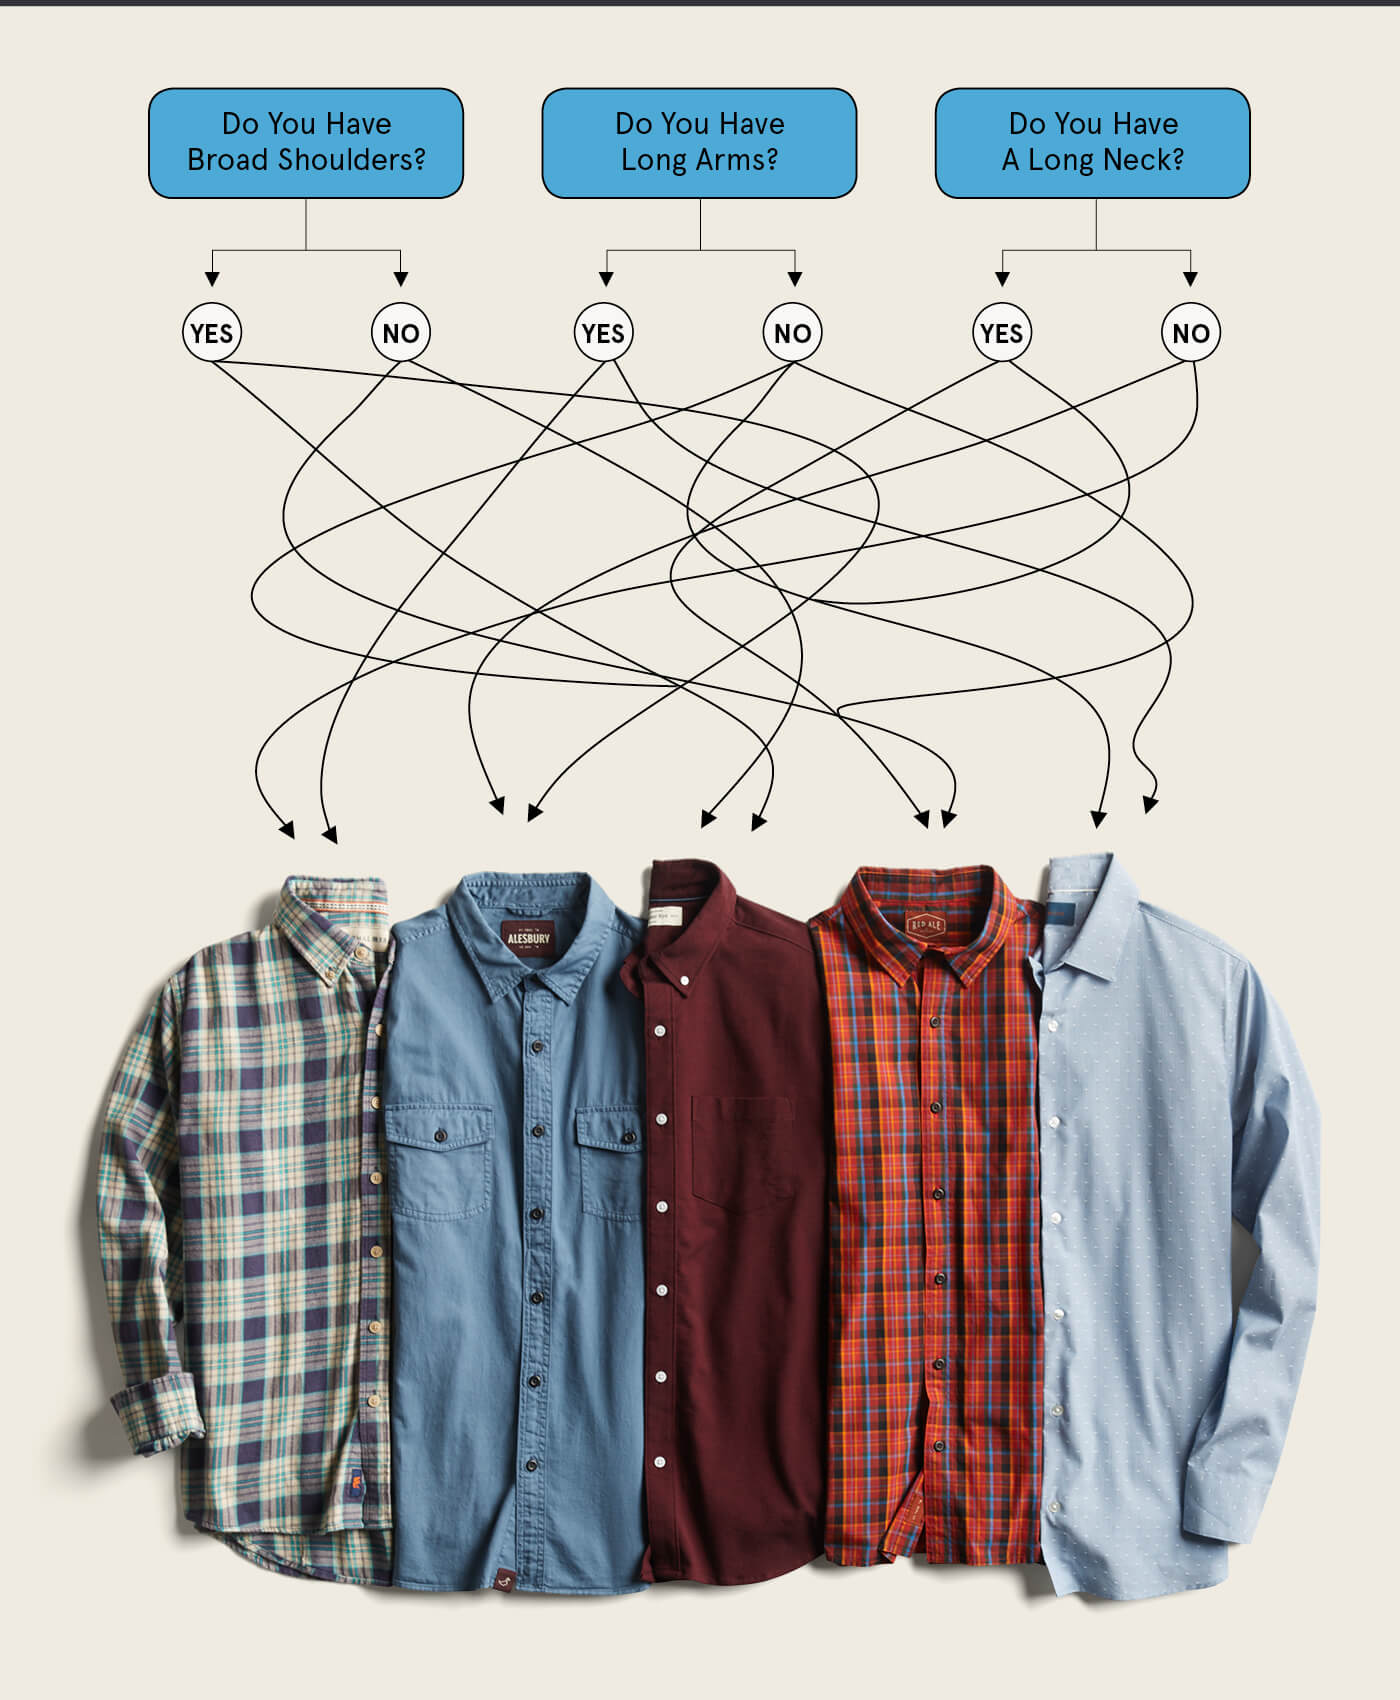 e30630d89a9 How We Find The Best Shirt For Your Build | Stitch Fix Men